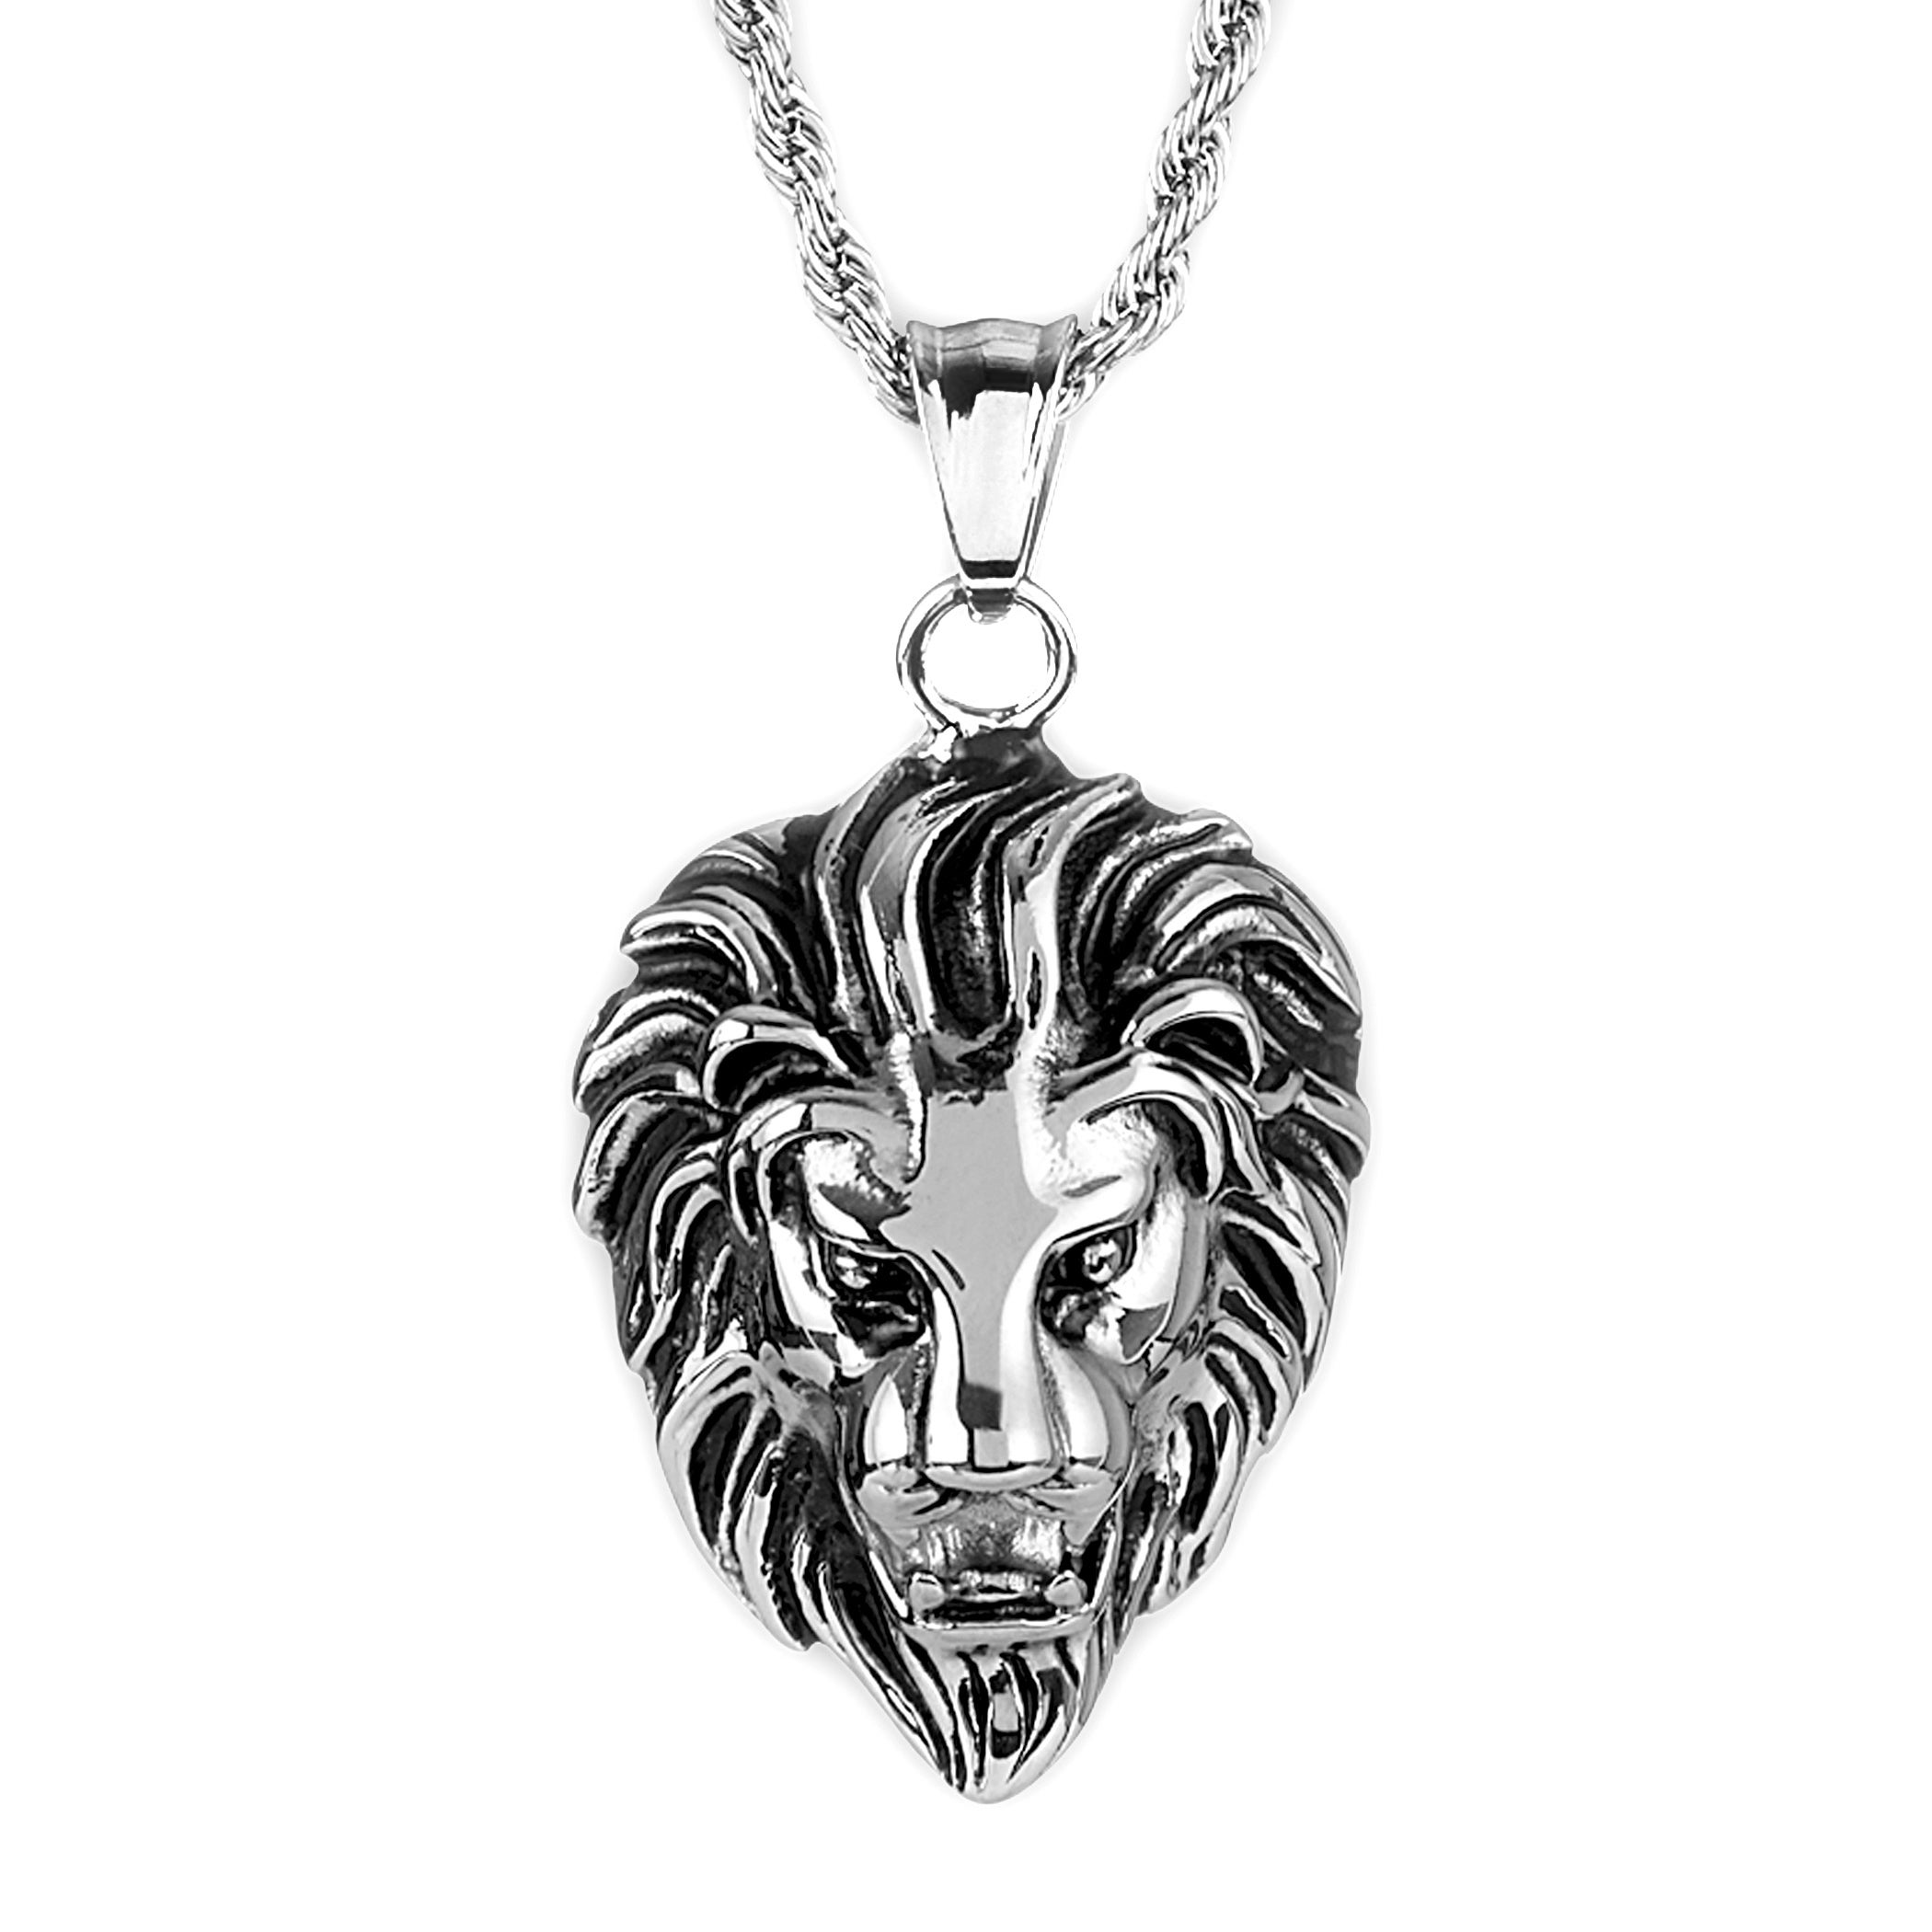 global pendant cut elephant collection vcp pendants gift made necklaces a vintage out product jewellery coin lion in stamp africa and south categories sku l tags